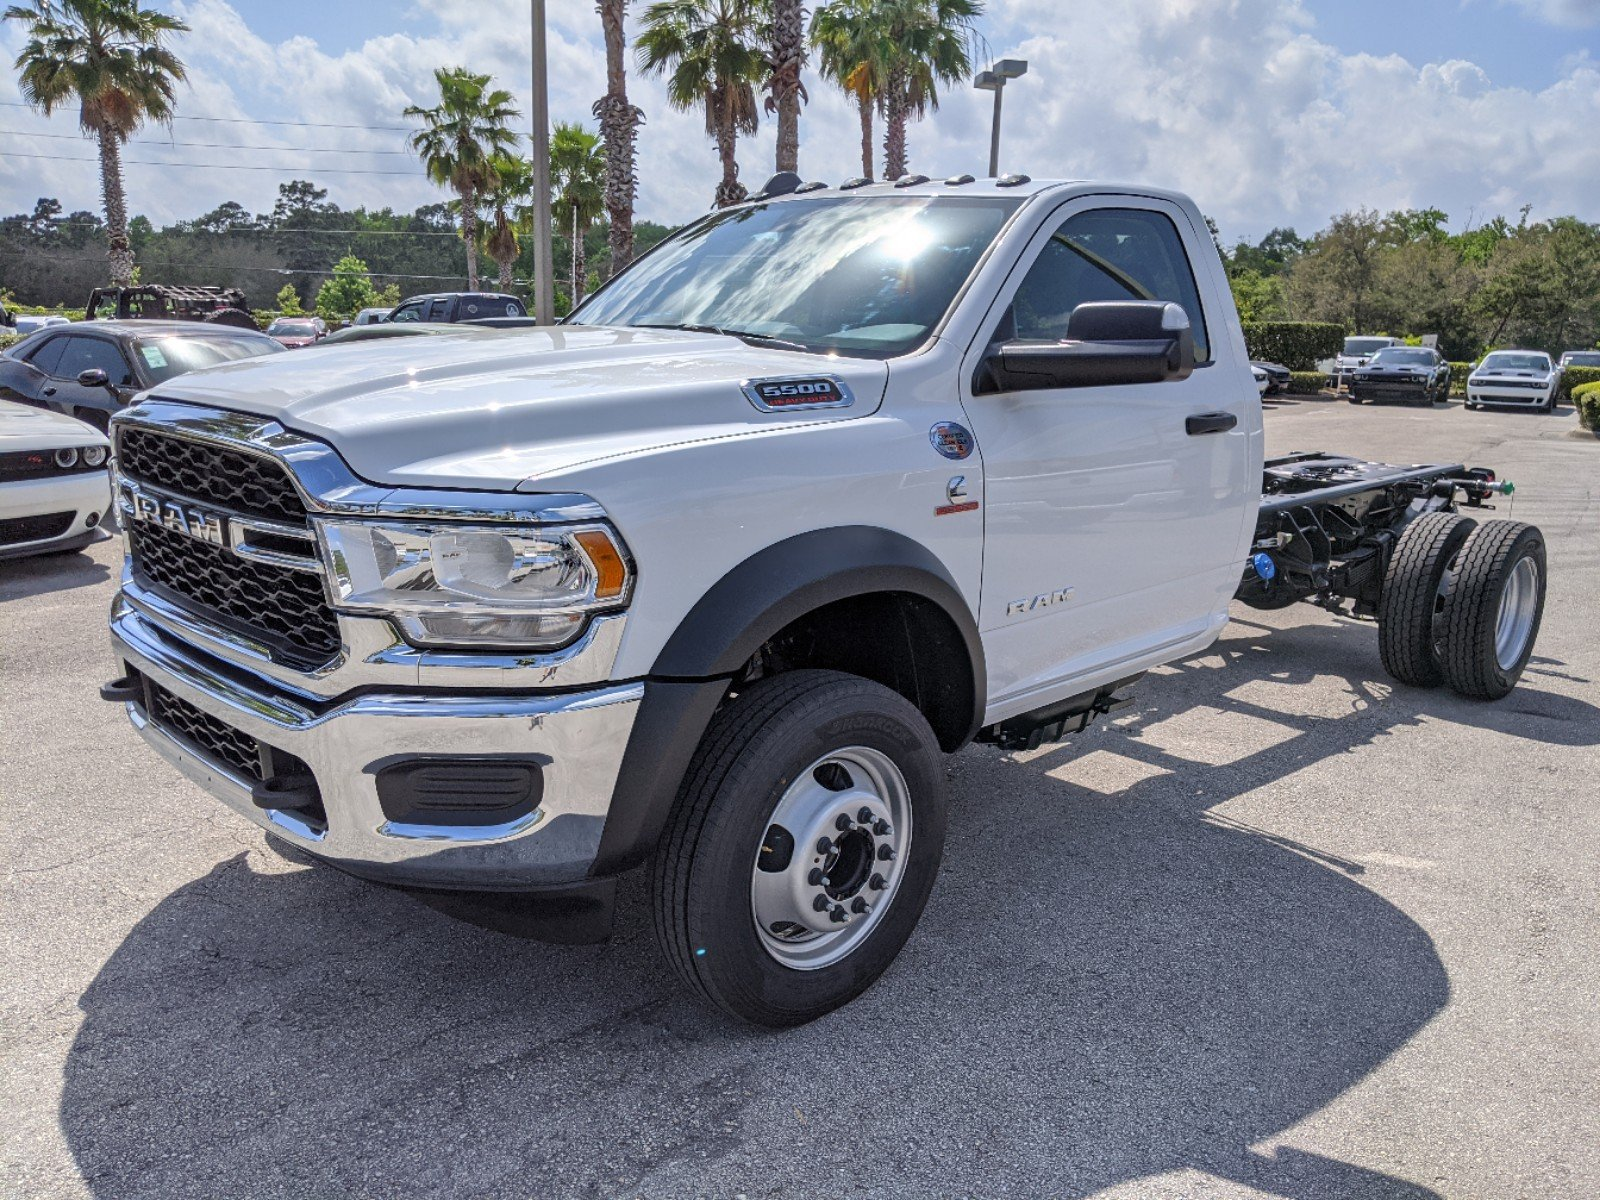 2020 Ram 5500 Regular Cab DRW 4x4, Cab Chassis #R20185 - photo 1